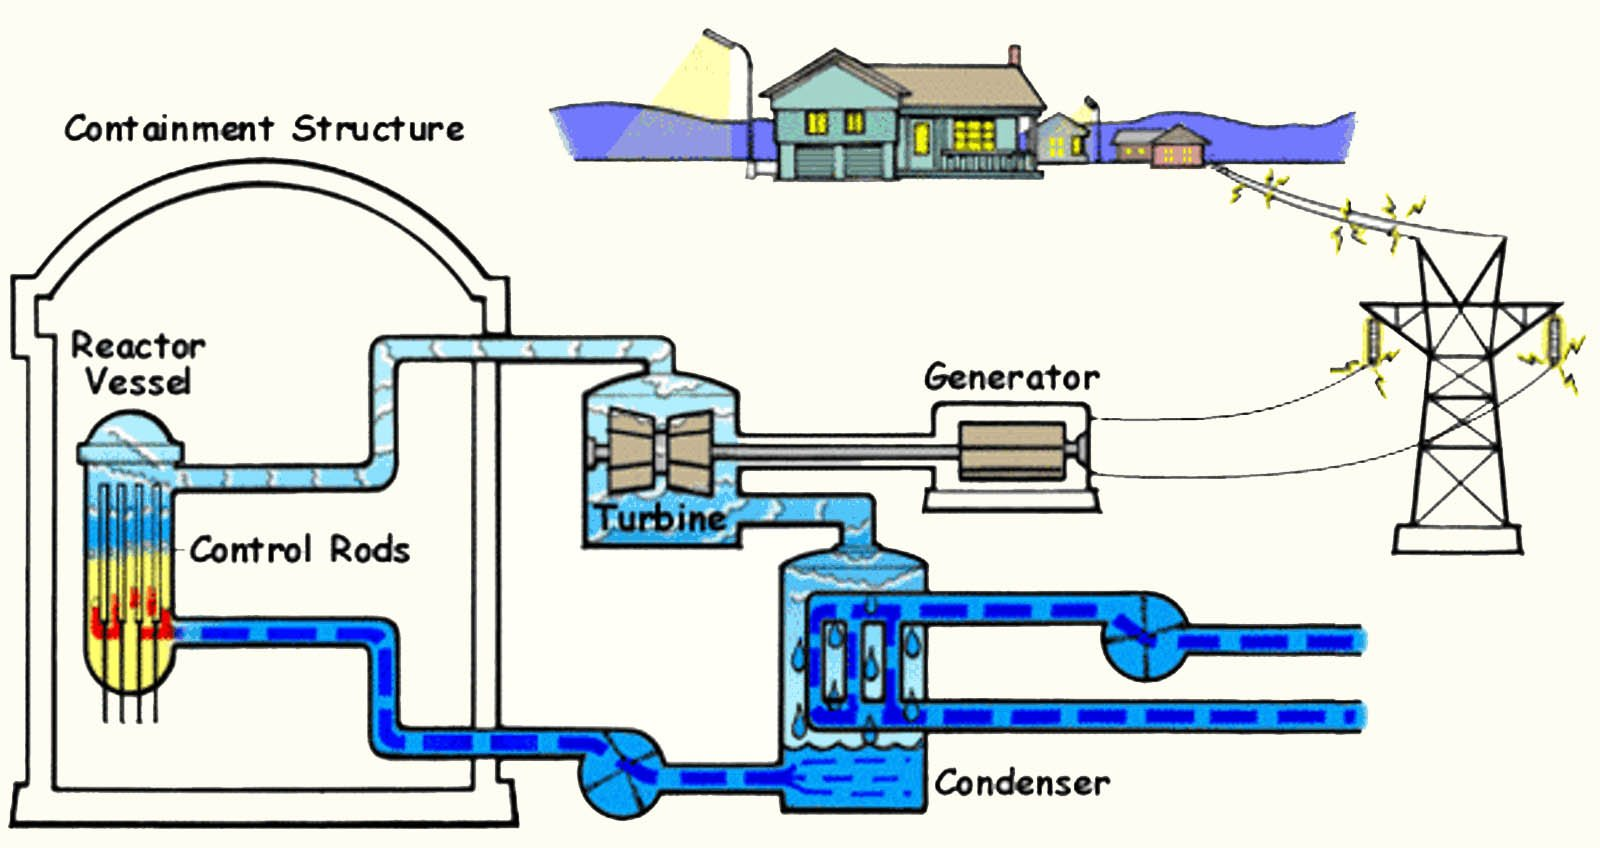 flow_diagram_nuclear_plant---cream-background_1064694.jpg